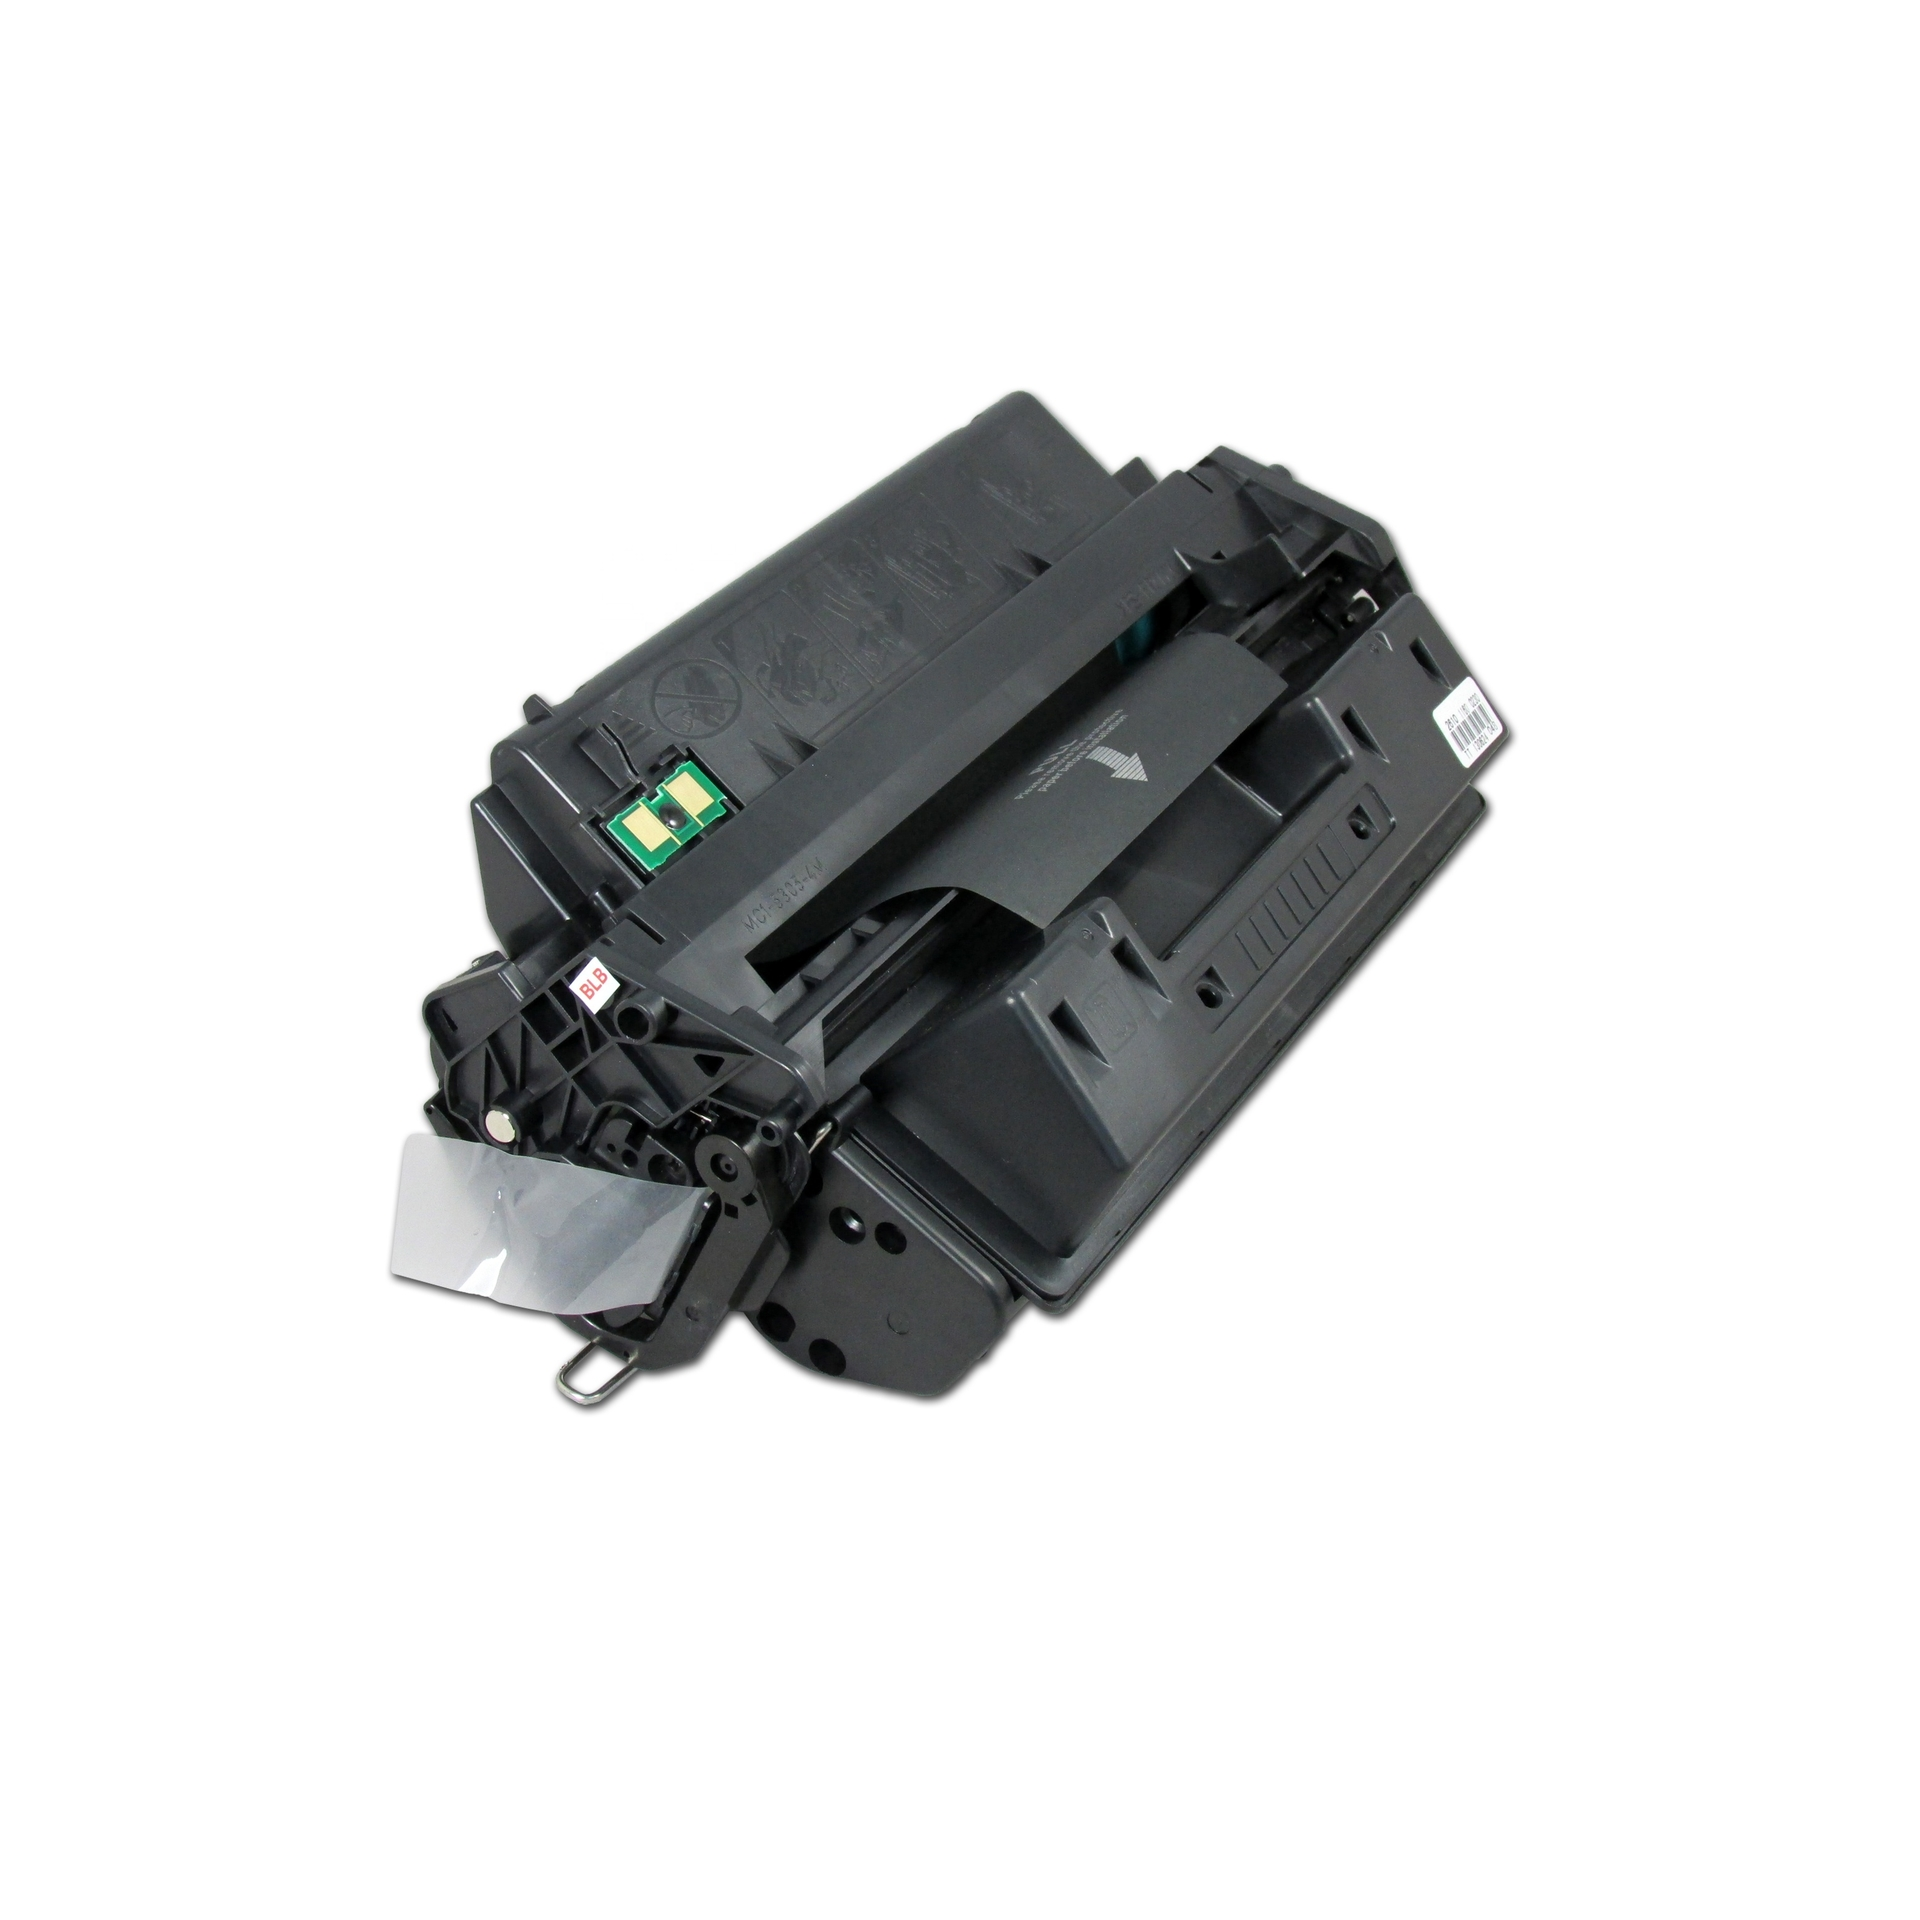 Q2610Auniversal toner cartridges premium laser toner cartridge